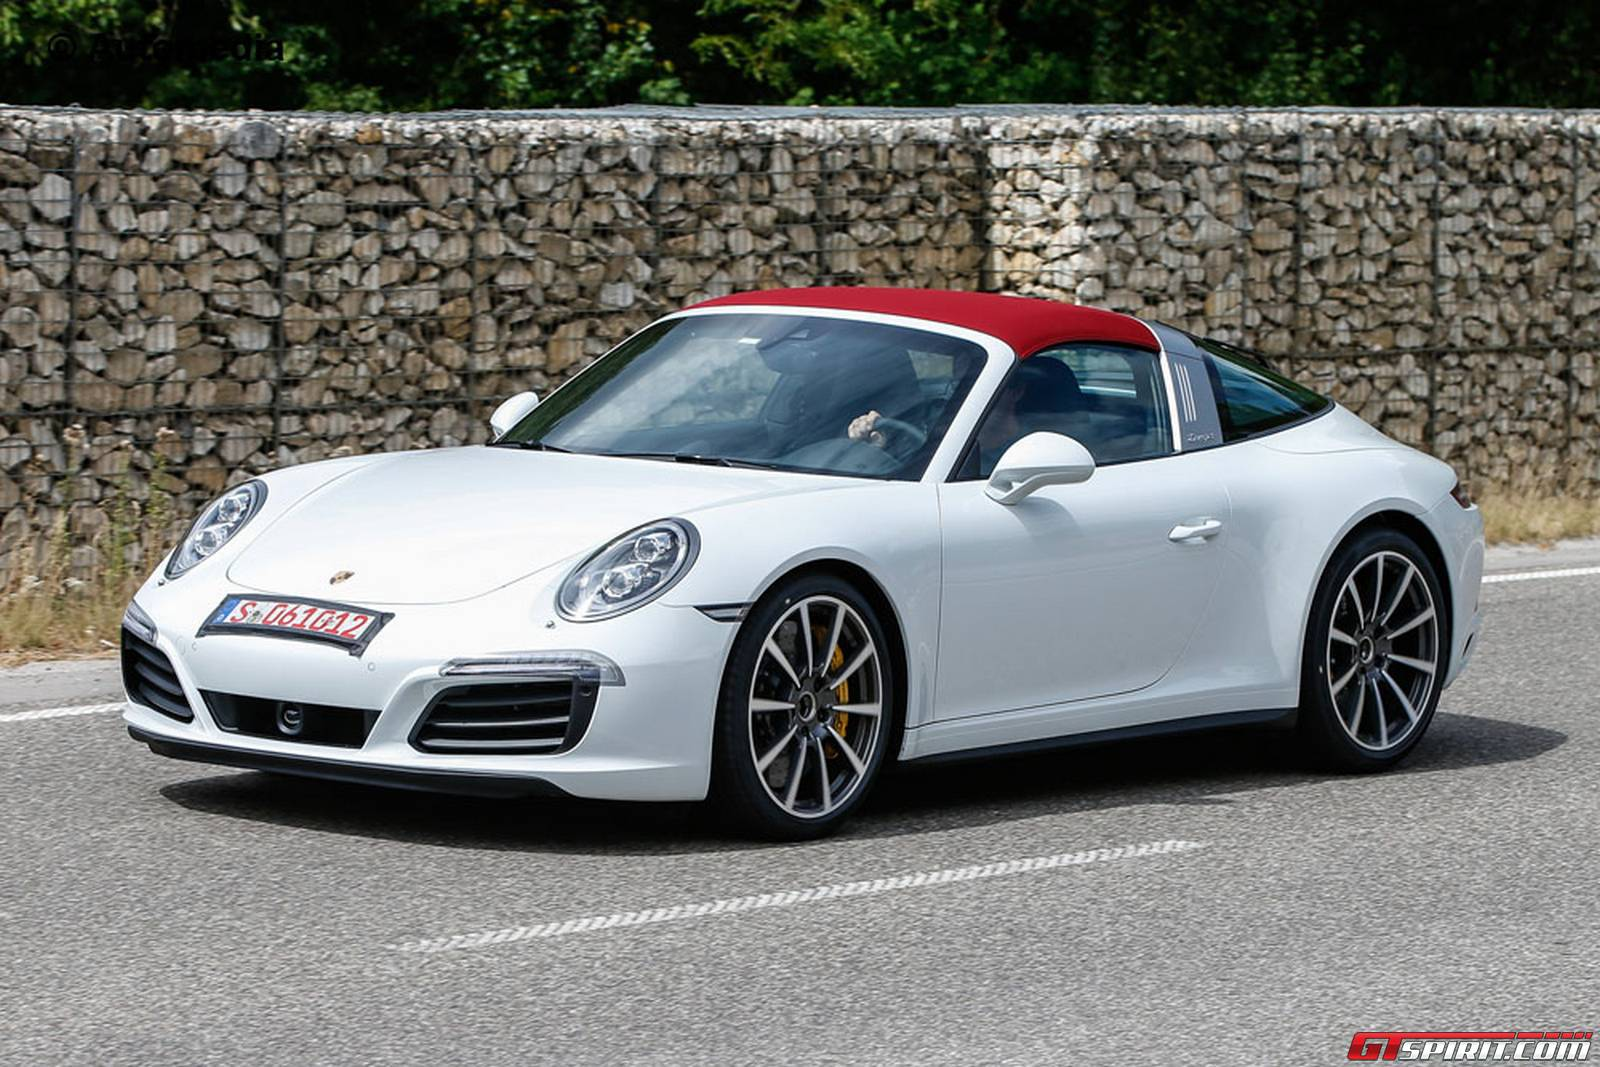 Porsche 911 Facelift Spy Shots Coupe Cabrio Targa And